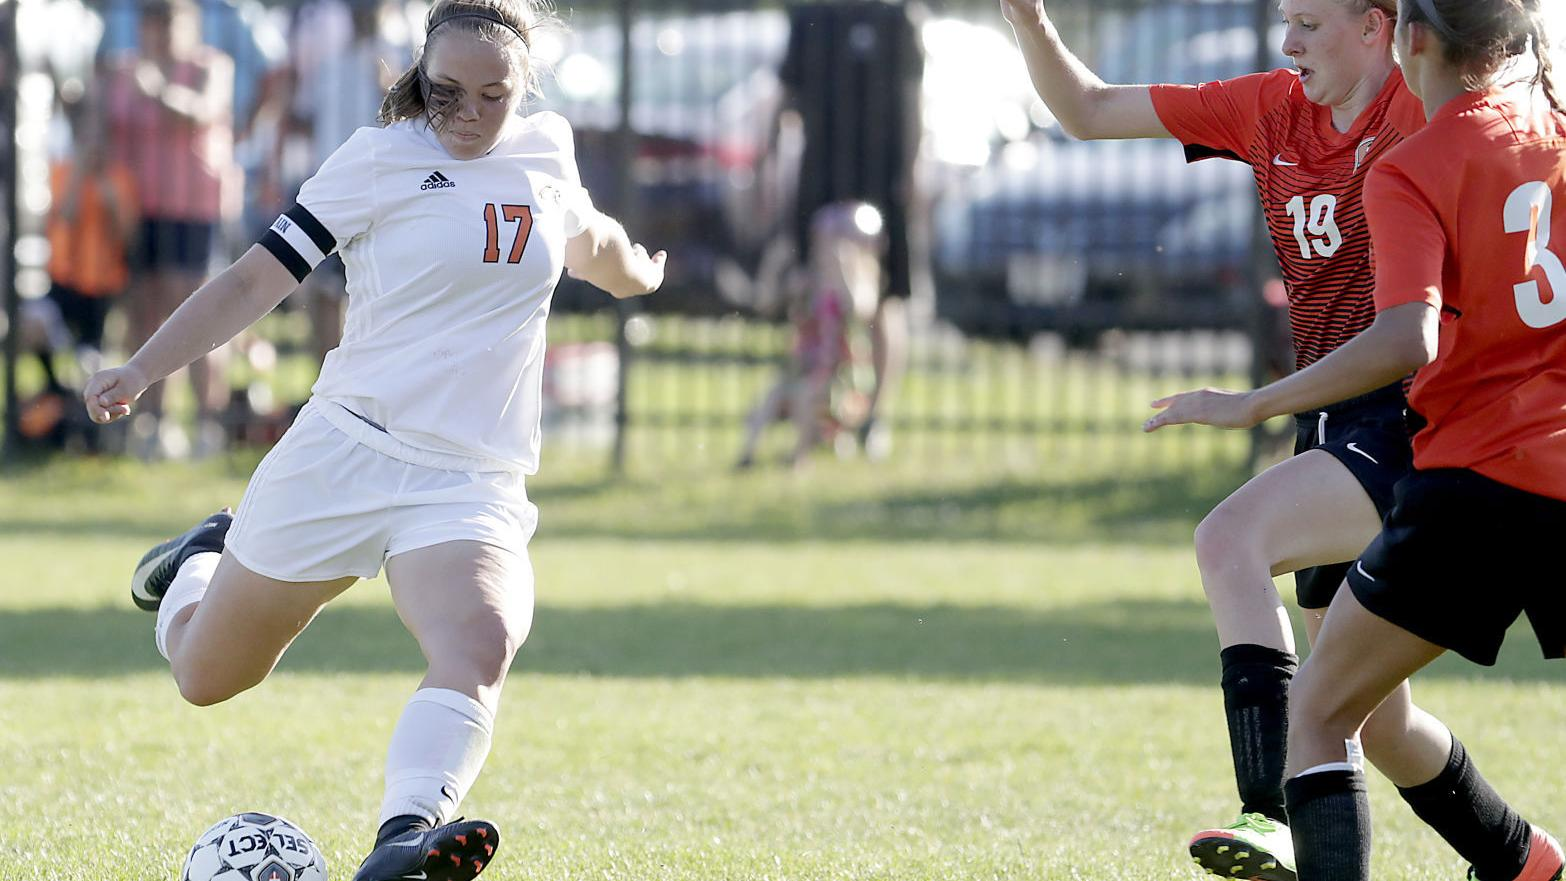 Prep girls soccer: Oregon's Holly Kaboord, Mount Horeb's Sydney King lead area all-state selections